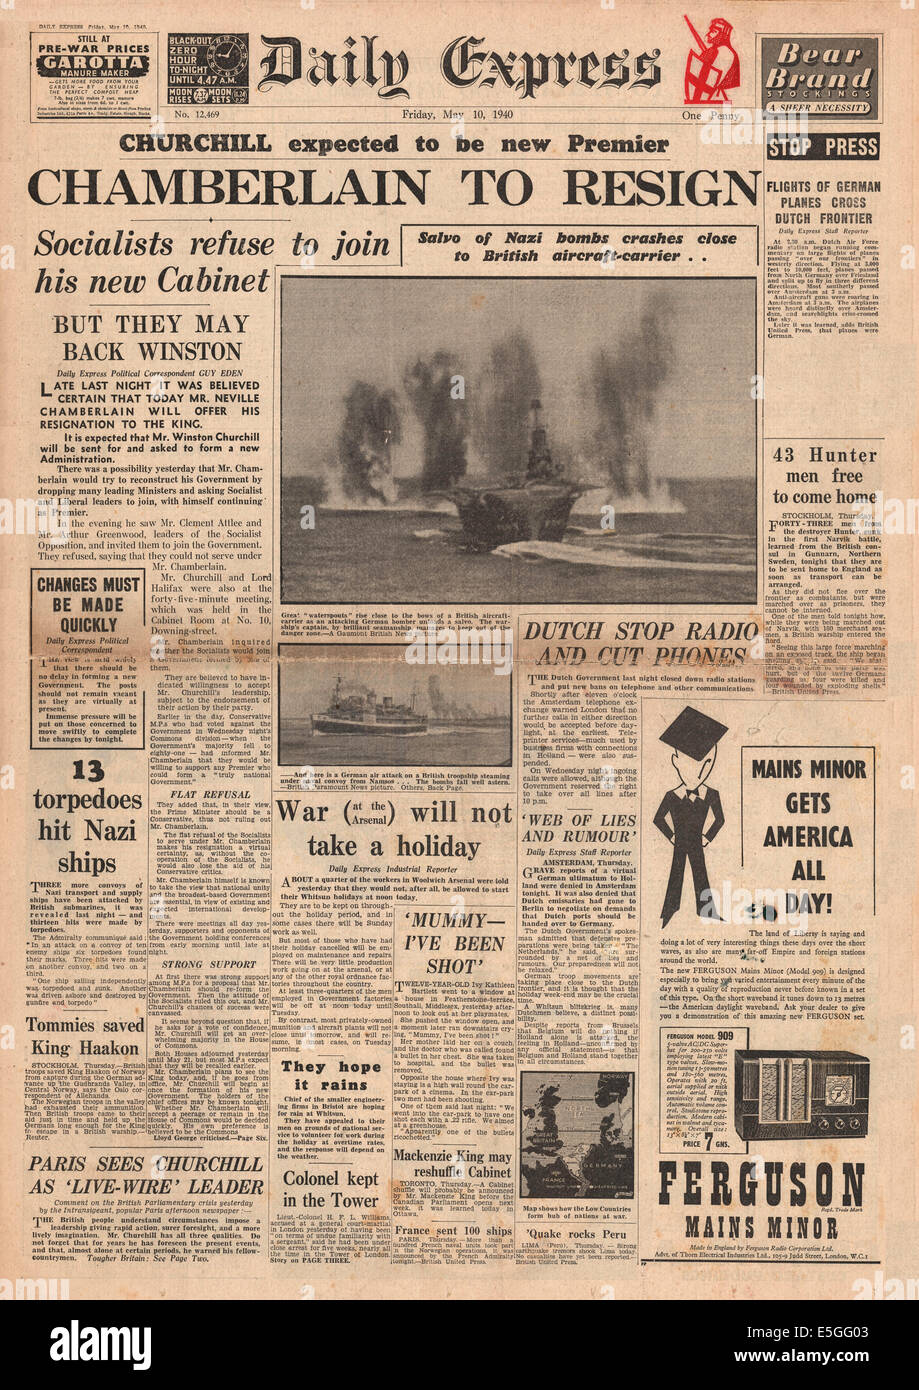 1940 Daily Express front page reporting Neville Chamberlain